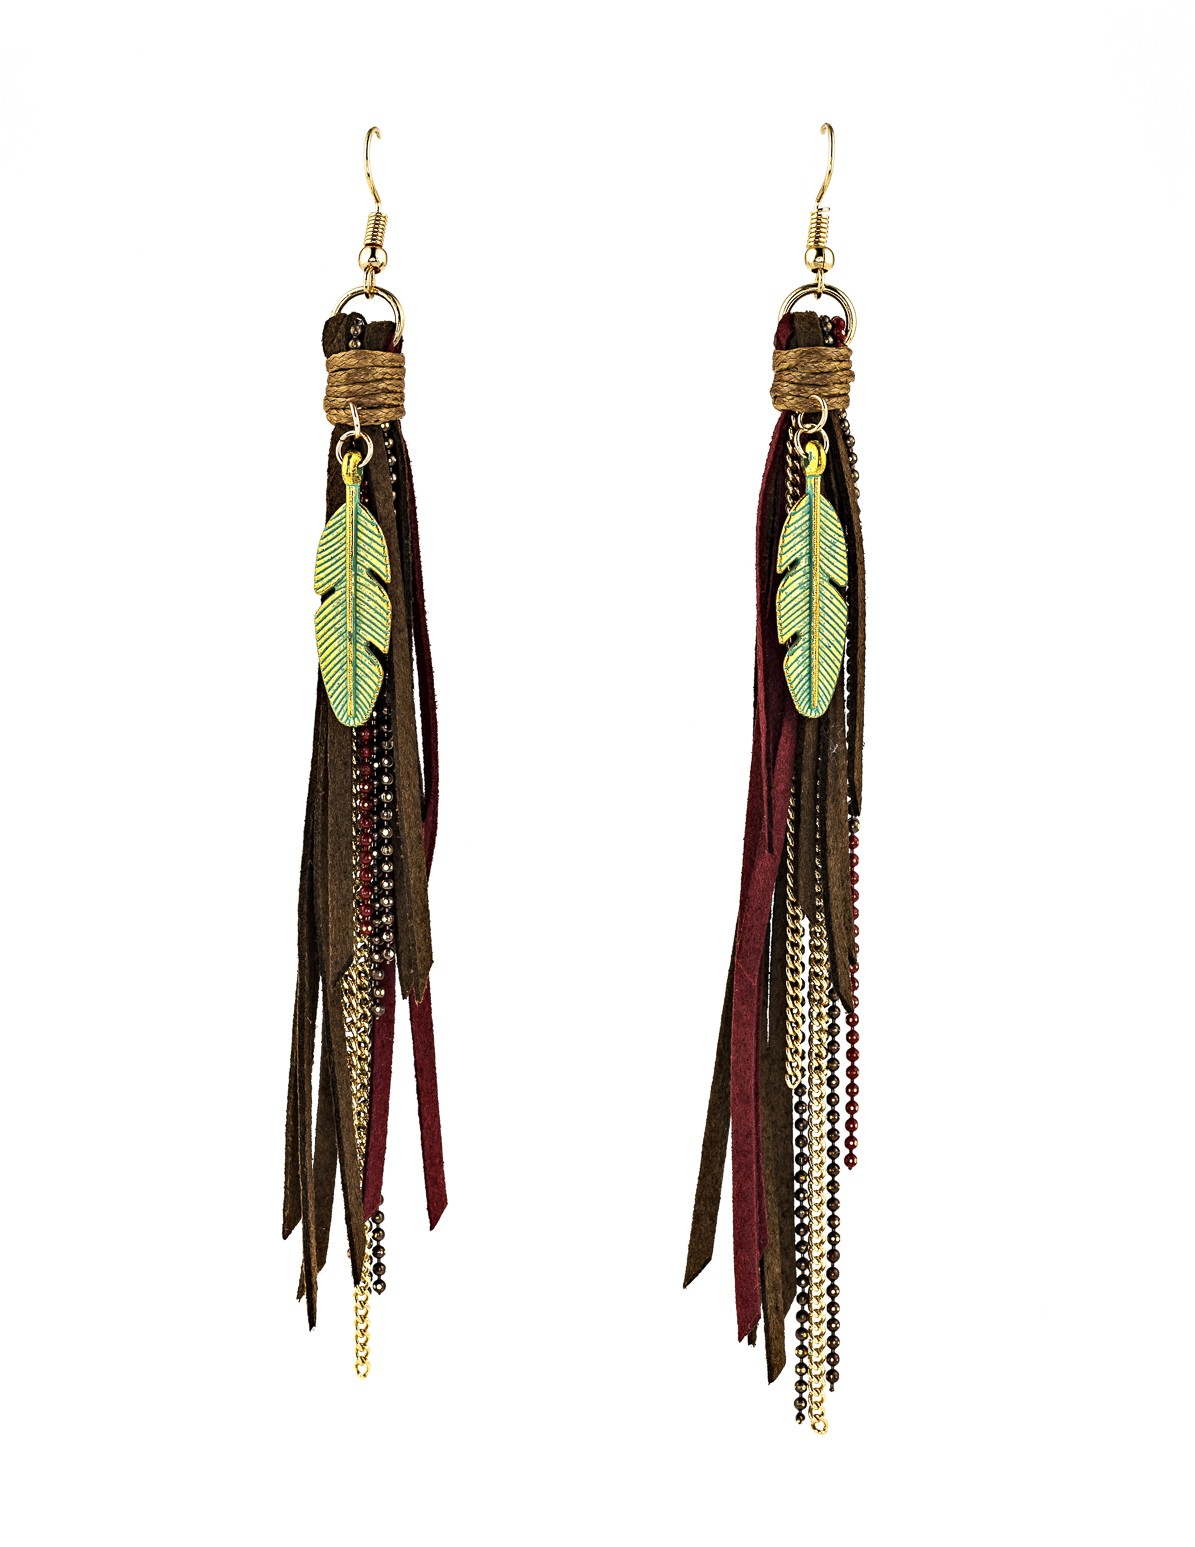 Tassel and Chain Earrings